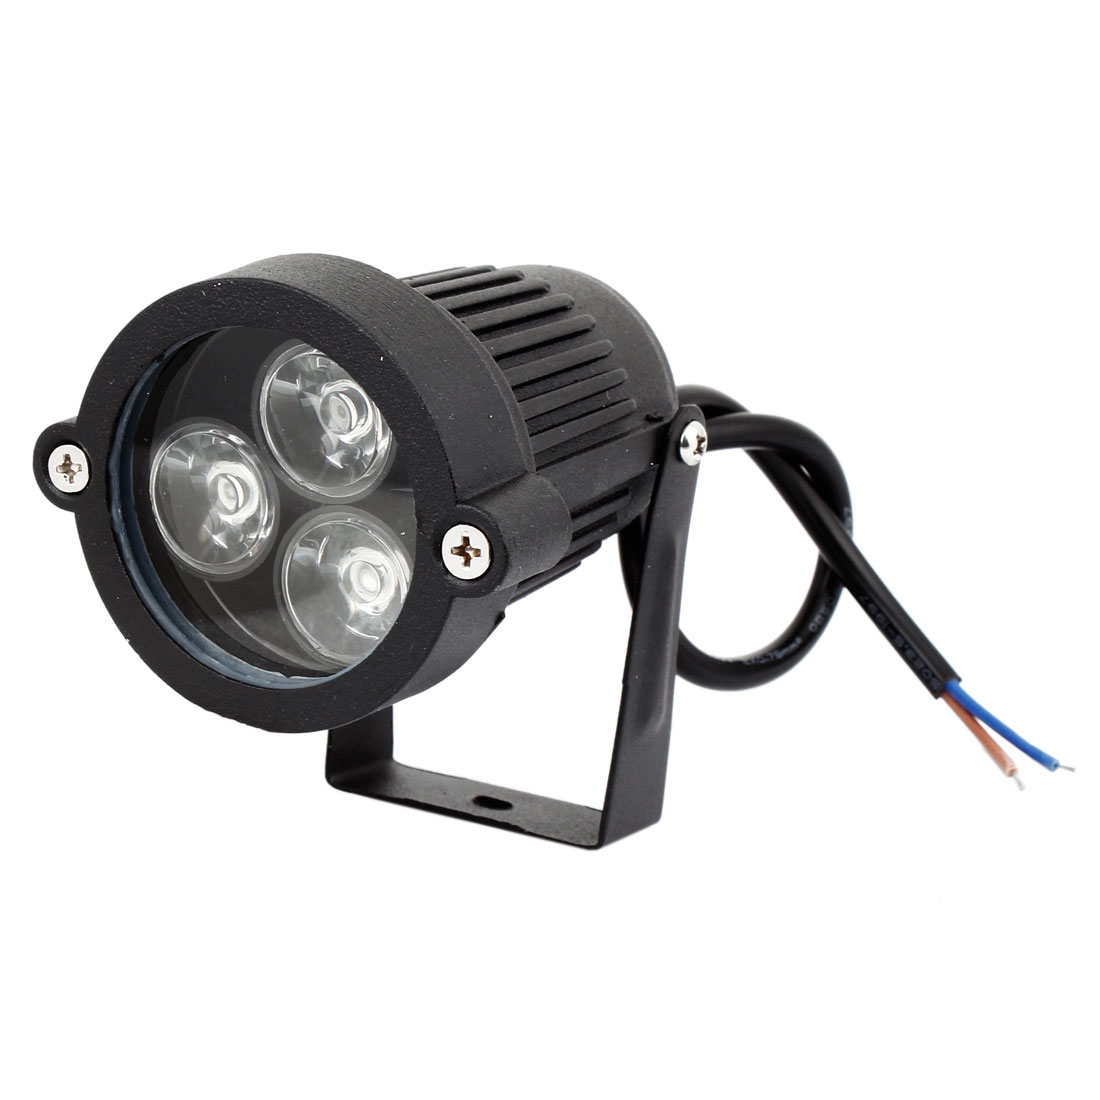 Landscape Garden Outdoor Black Aluminum Housing 6W 3-LED Blue Light Ground Spike Spotlight 300-330LM 12V